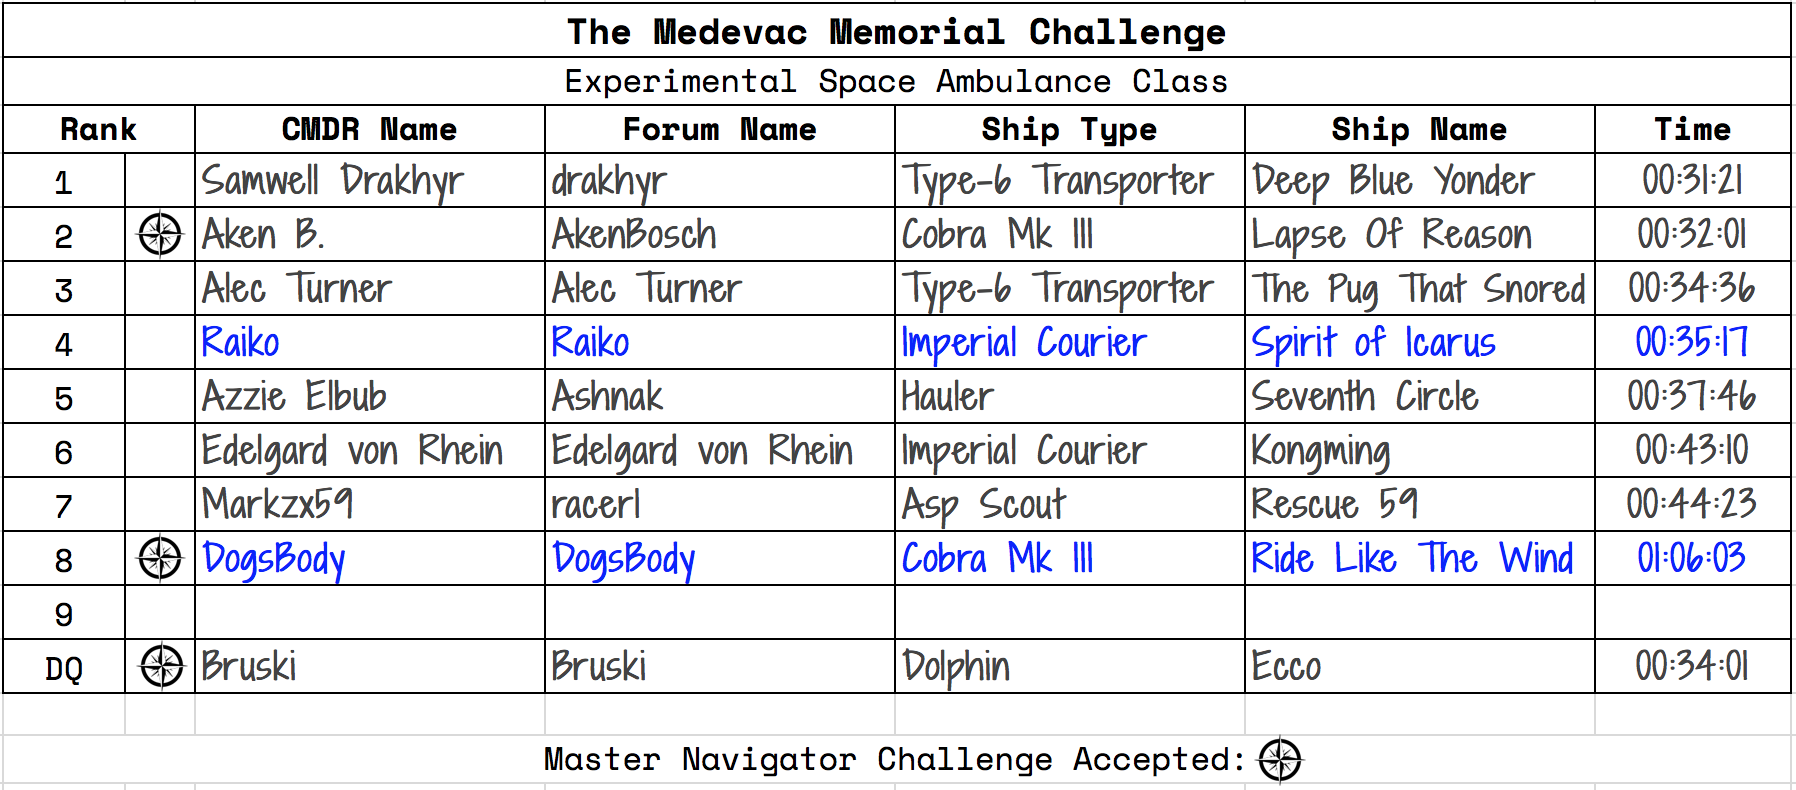 The Medevac Memorial Challenge Results: Experimental